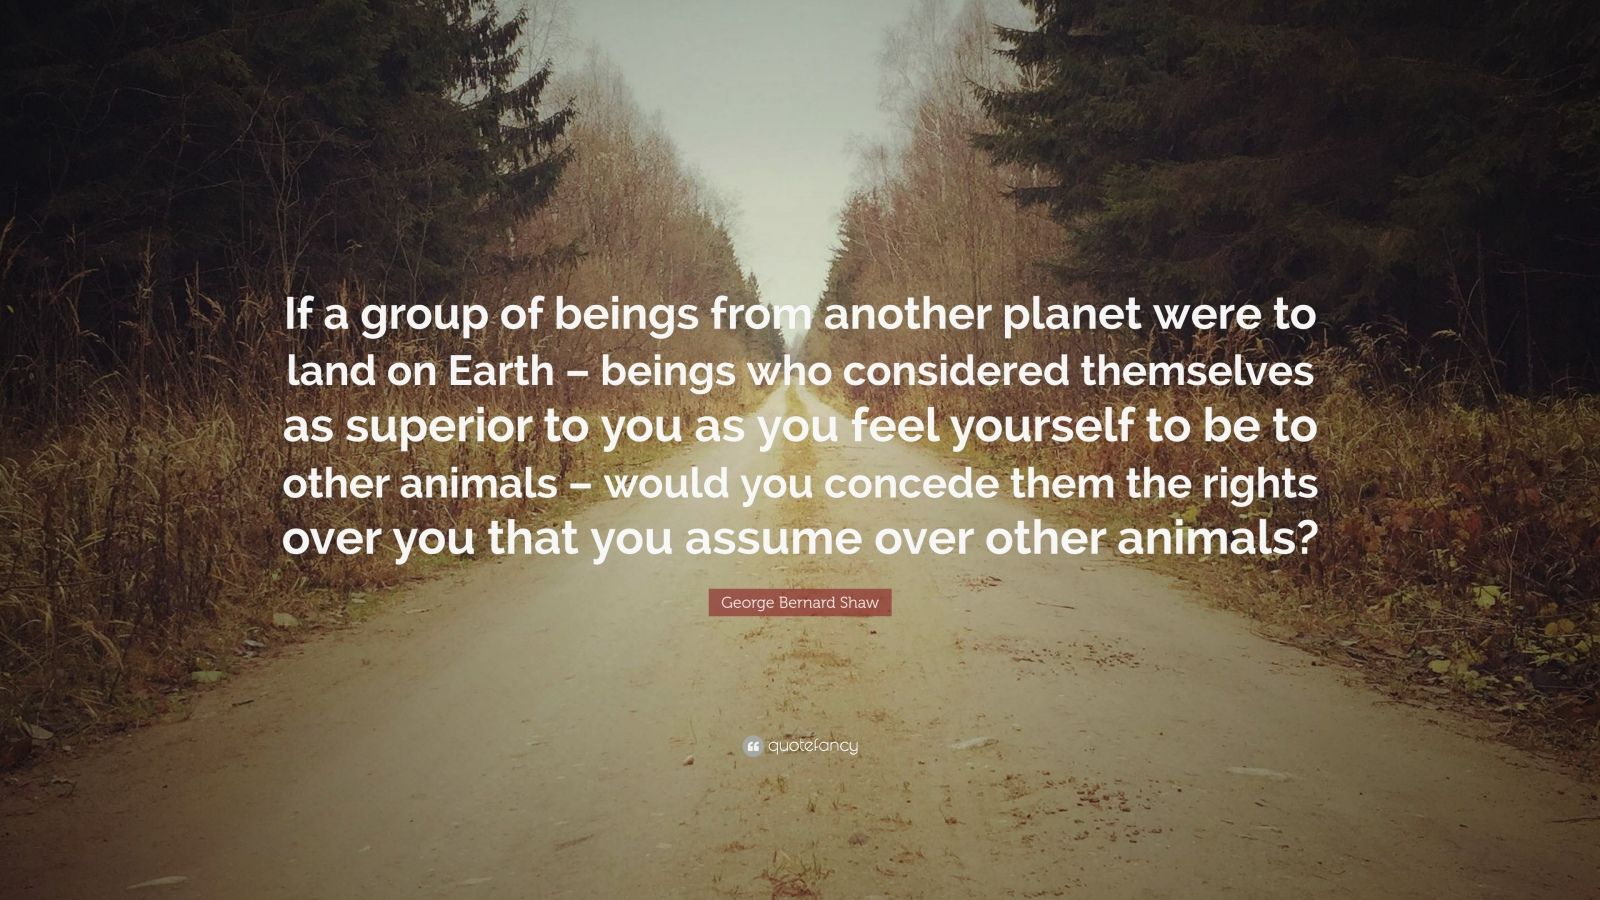 "George Bernard Shaw Quote: ""If a group of beings from another planet were to land on Earth – beings who considered themselves as superior to you as you feel yourself to be to other animals – would you concede them the rights over you that you assume over other animals?"""